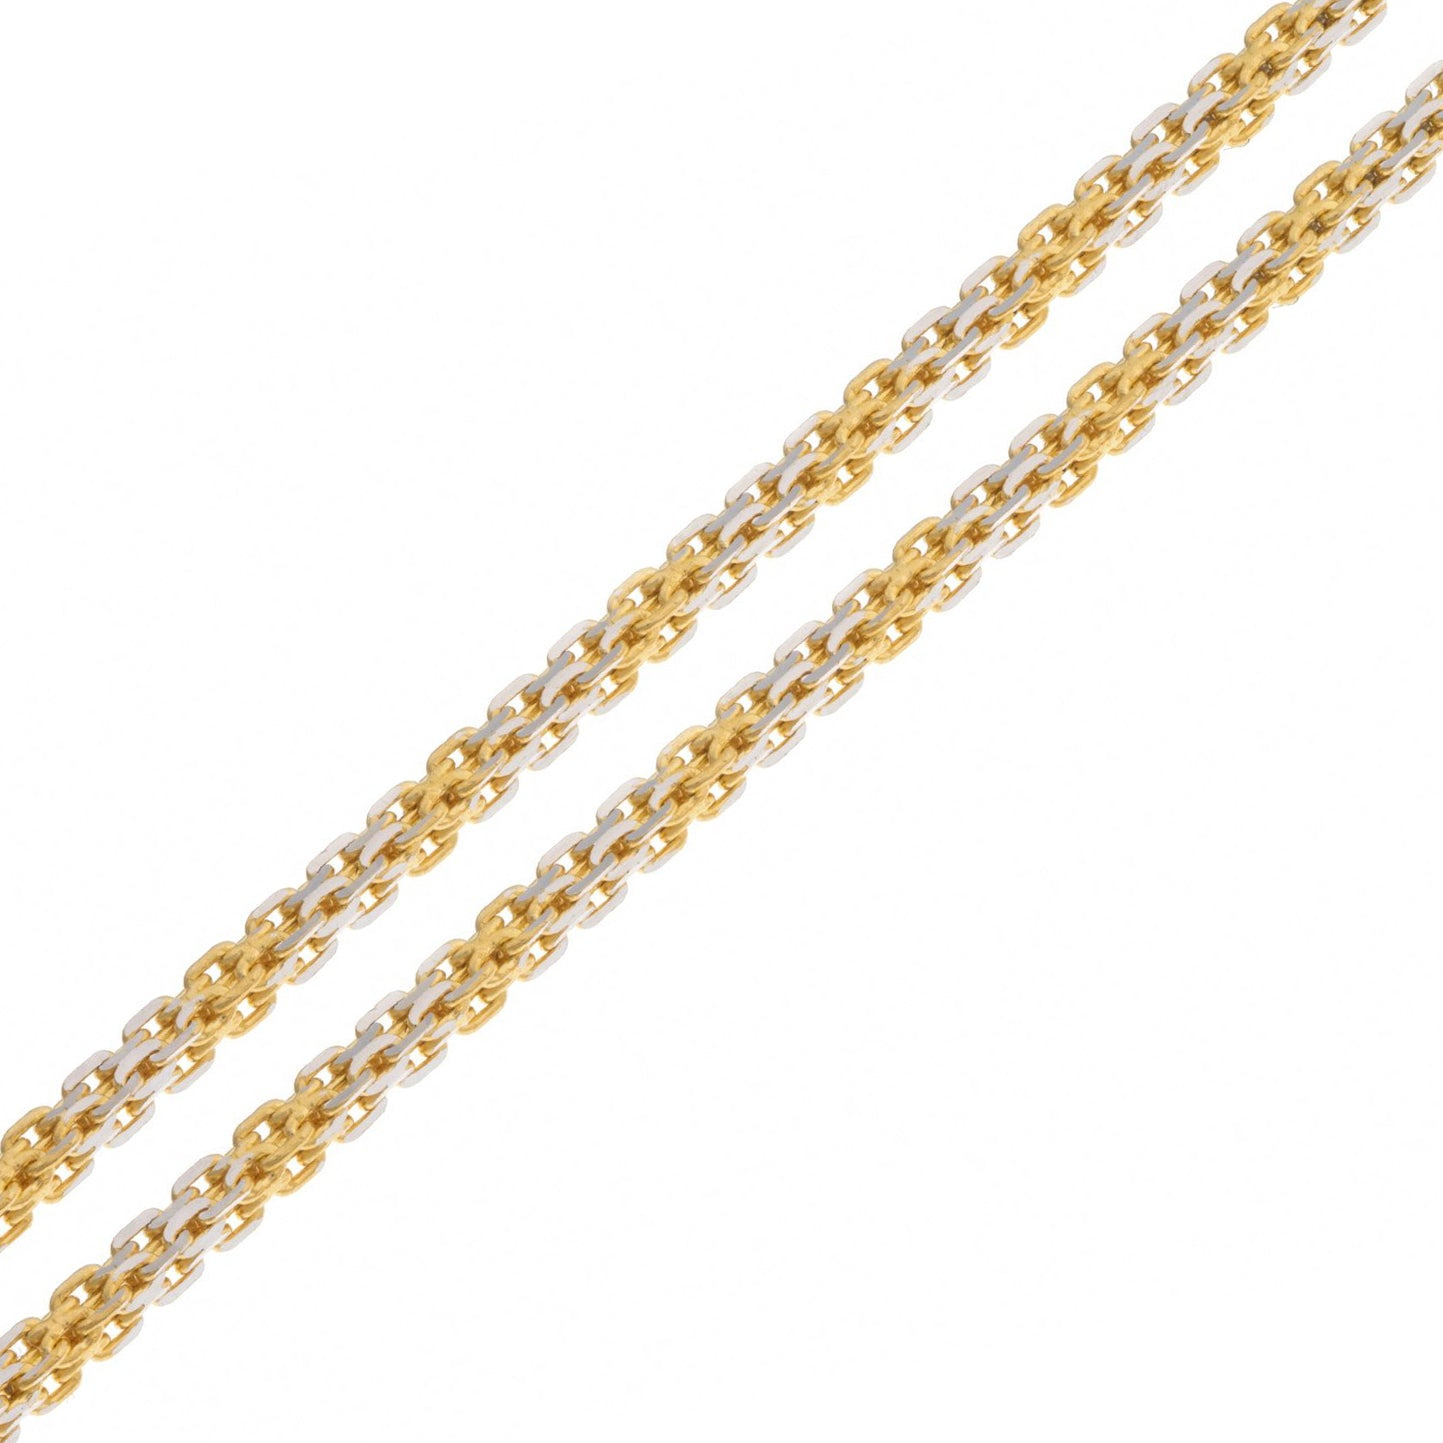 22ct Gold Chain with Rhodium Design C-2791